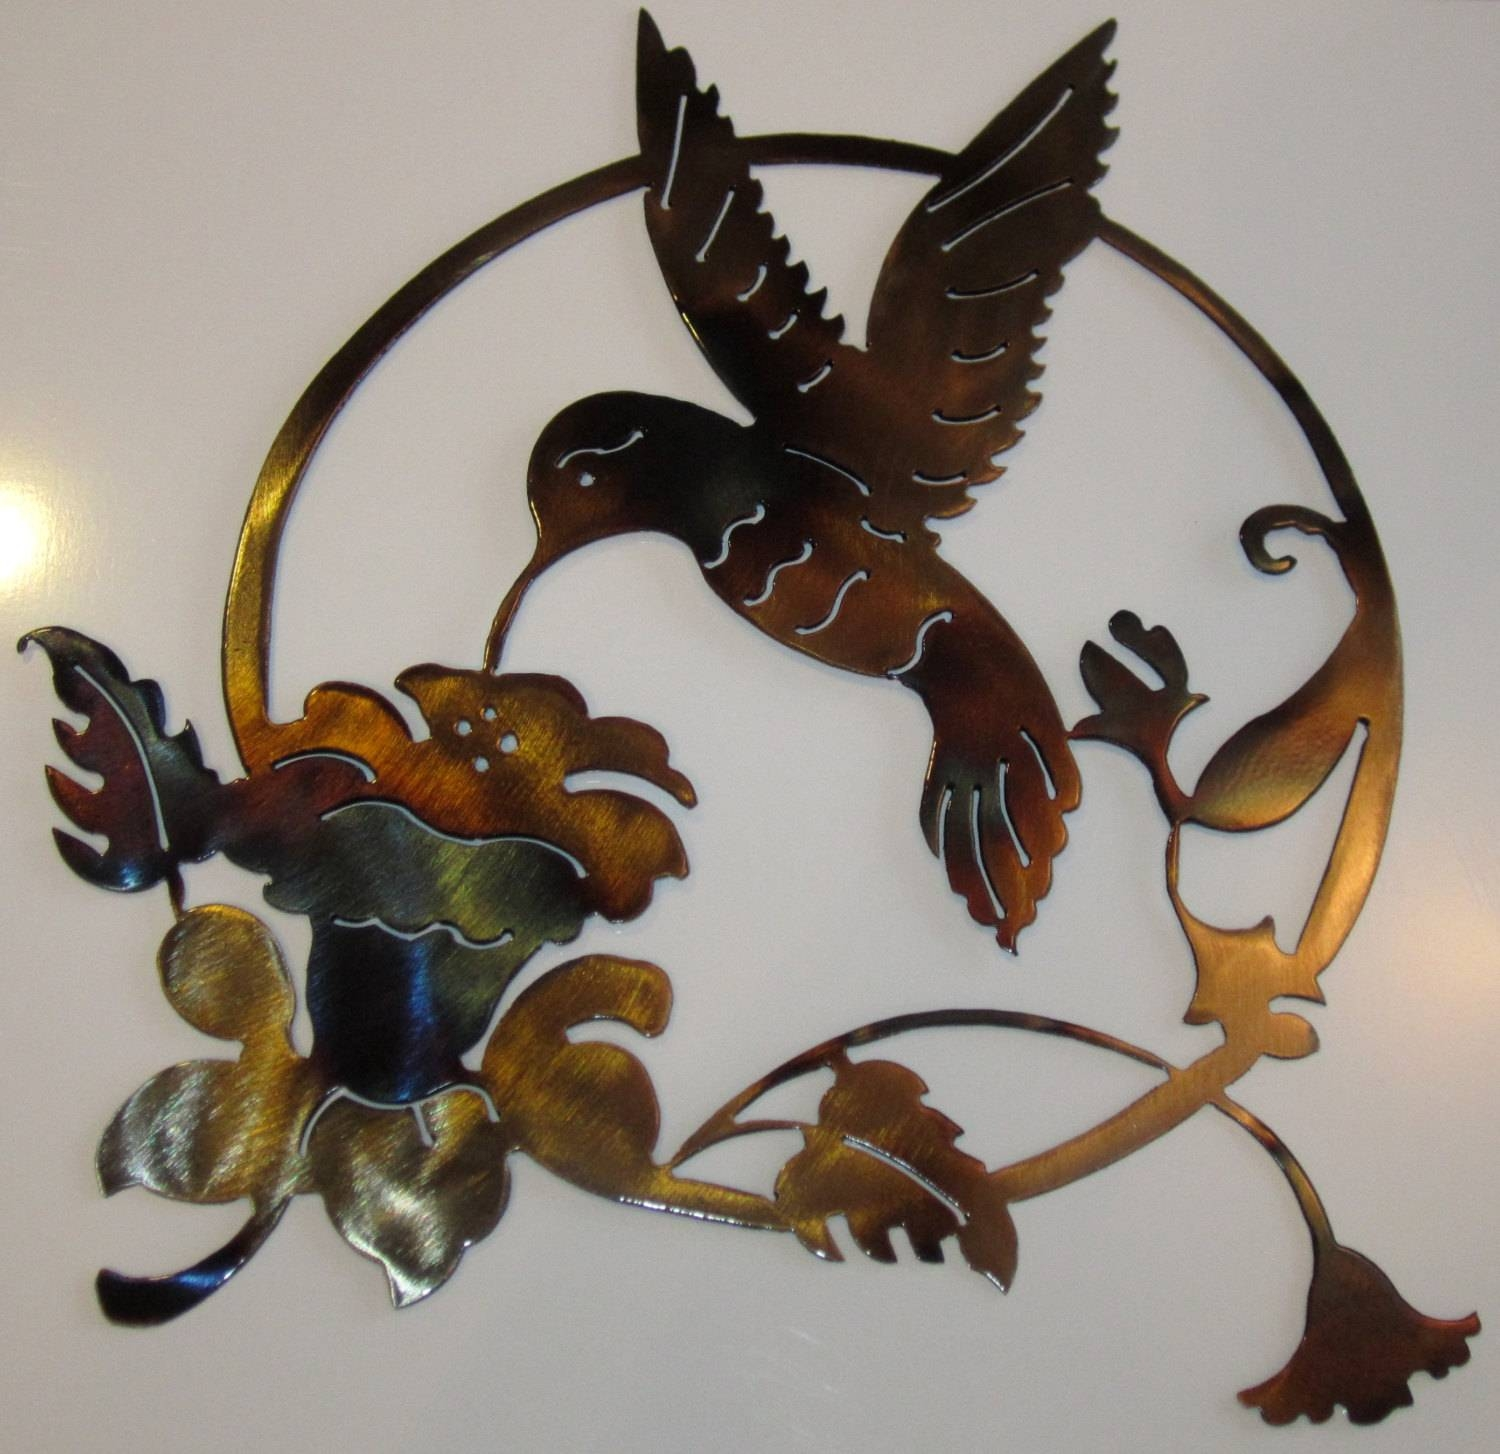 Hummingbird Metal Art Intended For Recent Hummingbird Metal Wall Art (Gallery 1 of 20)